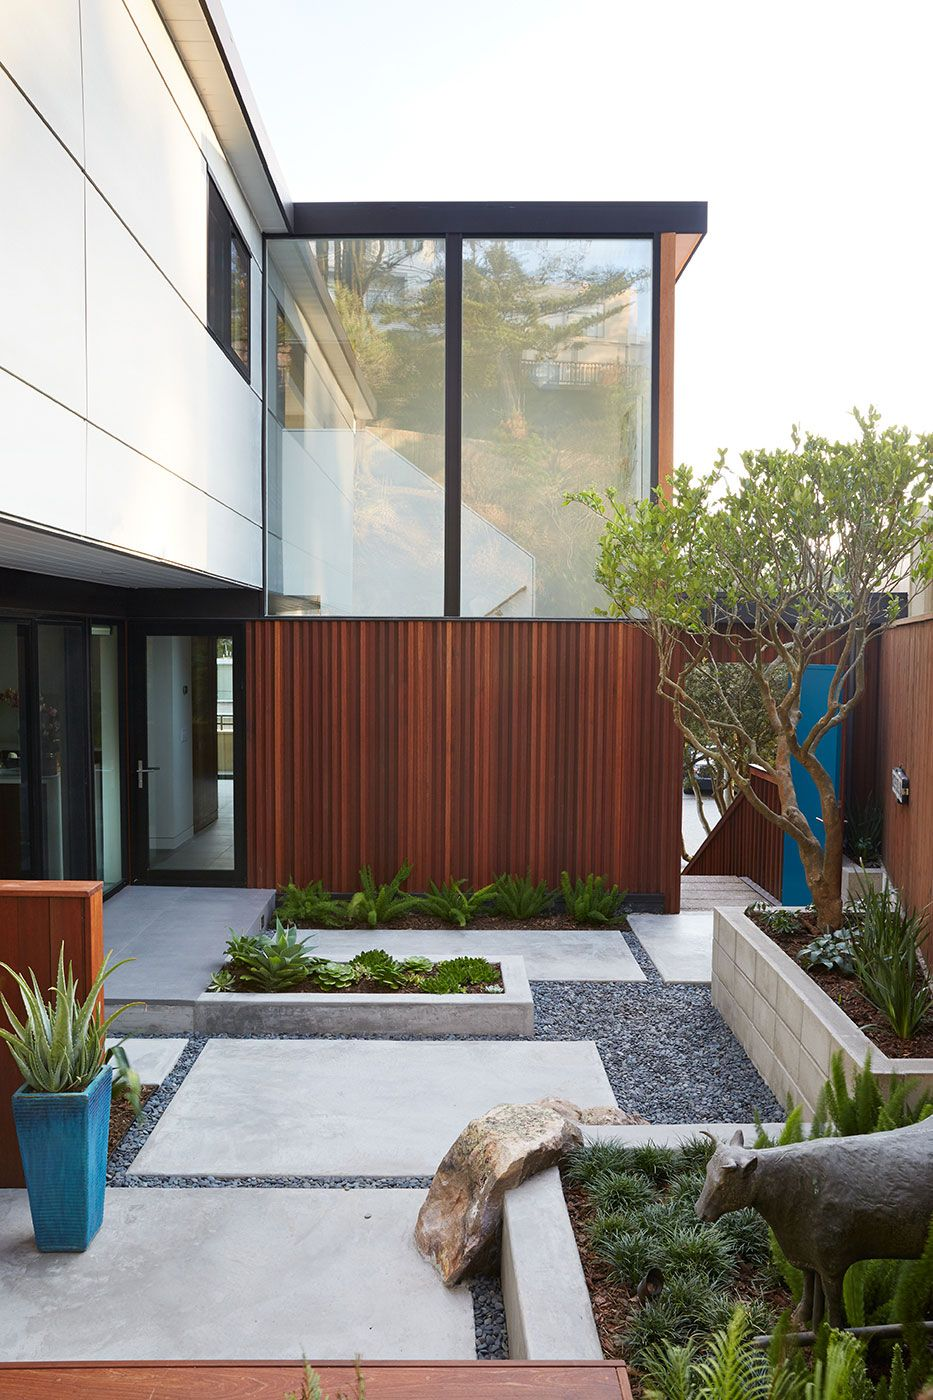 Klopf Architecture Works on an Eichler Remodel in San Francisco Backyard